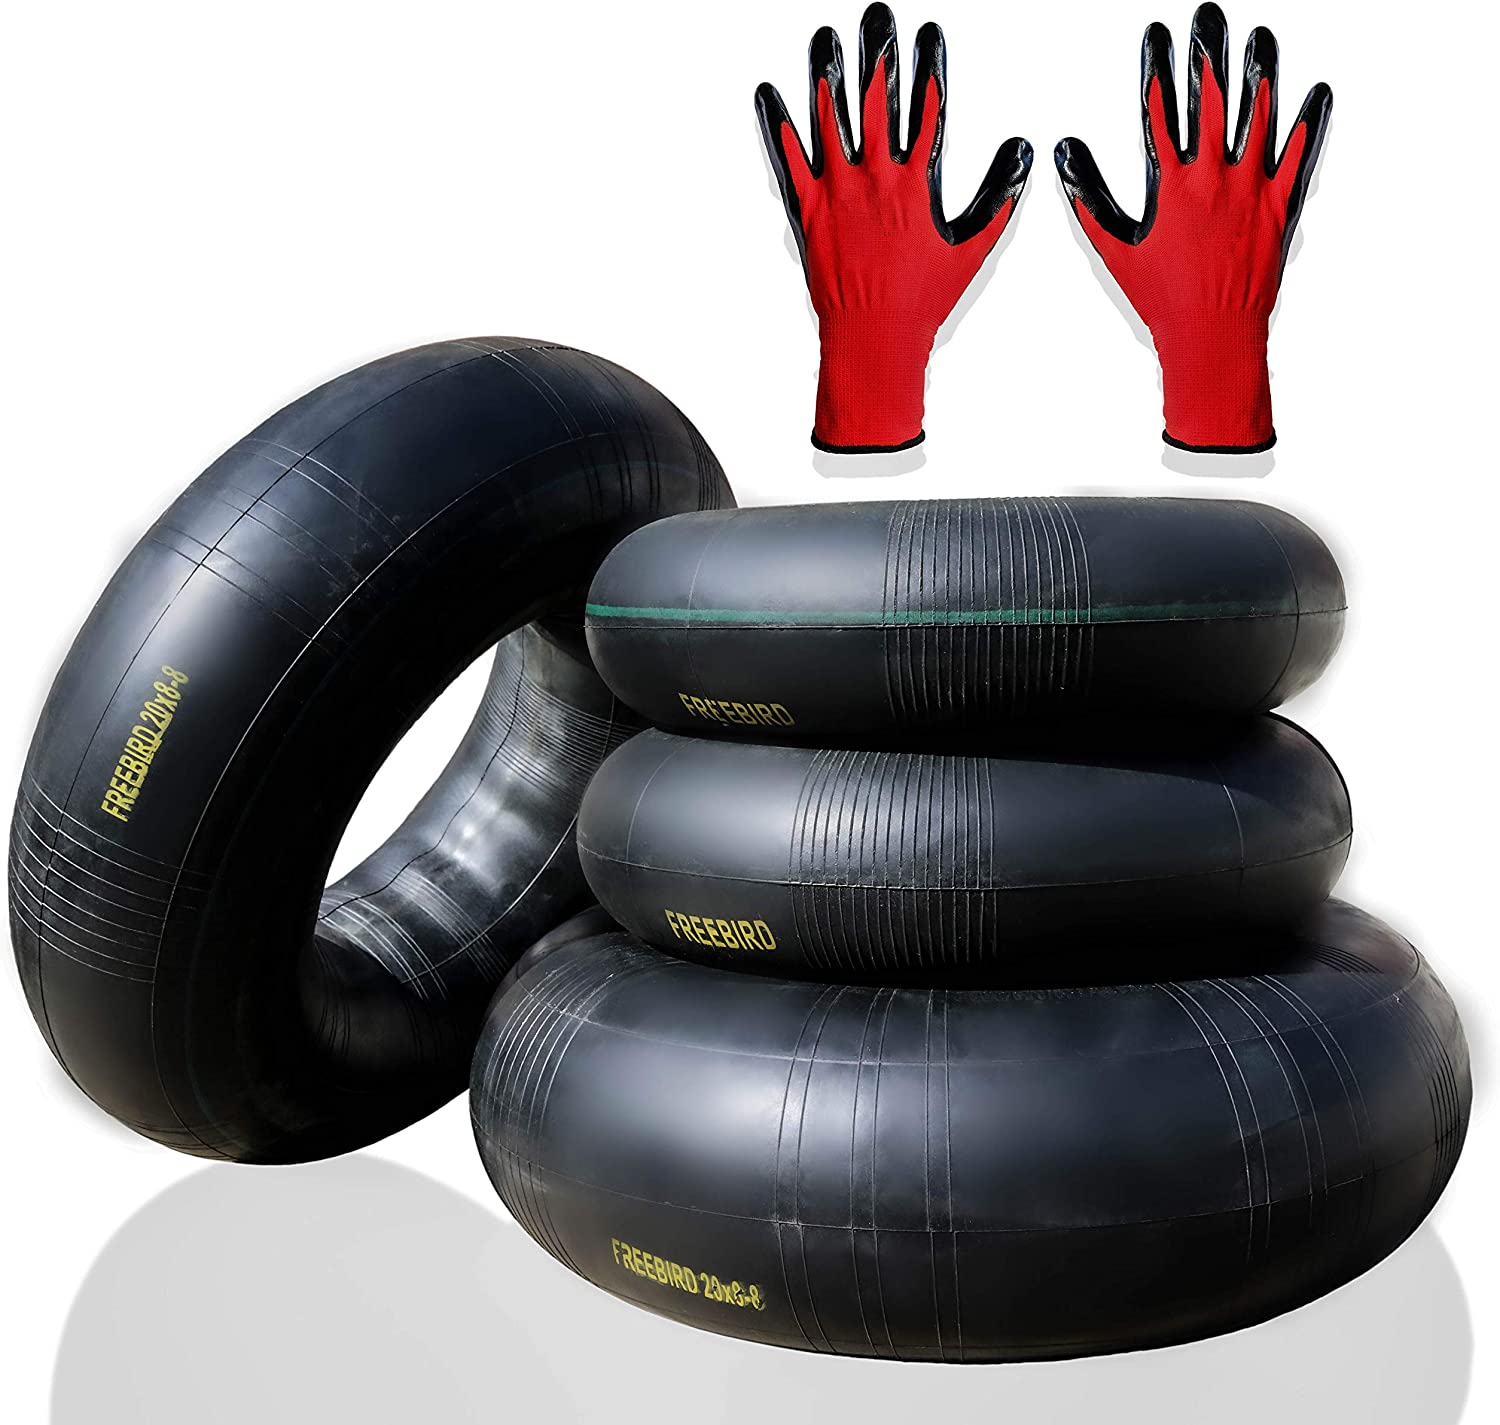 """FreeBird 4 Pack Replacement Inner Tubes for Lawn Mower Tires 2 x 15x6.00-6/"""" for Front and 2 x 20x8.00-8/"""" or 20x10.00-8/"""" for Rear with TR-13 Valve Stem Complete with Gloves Set"""